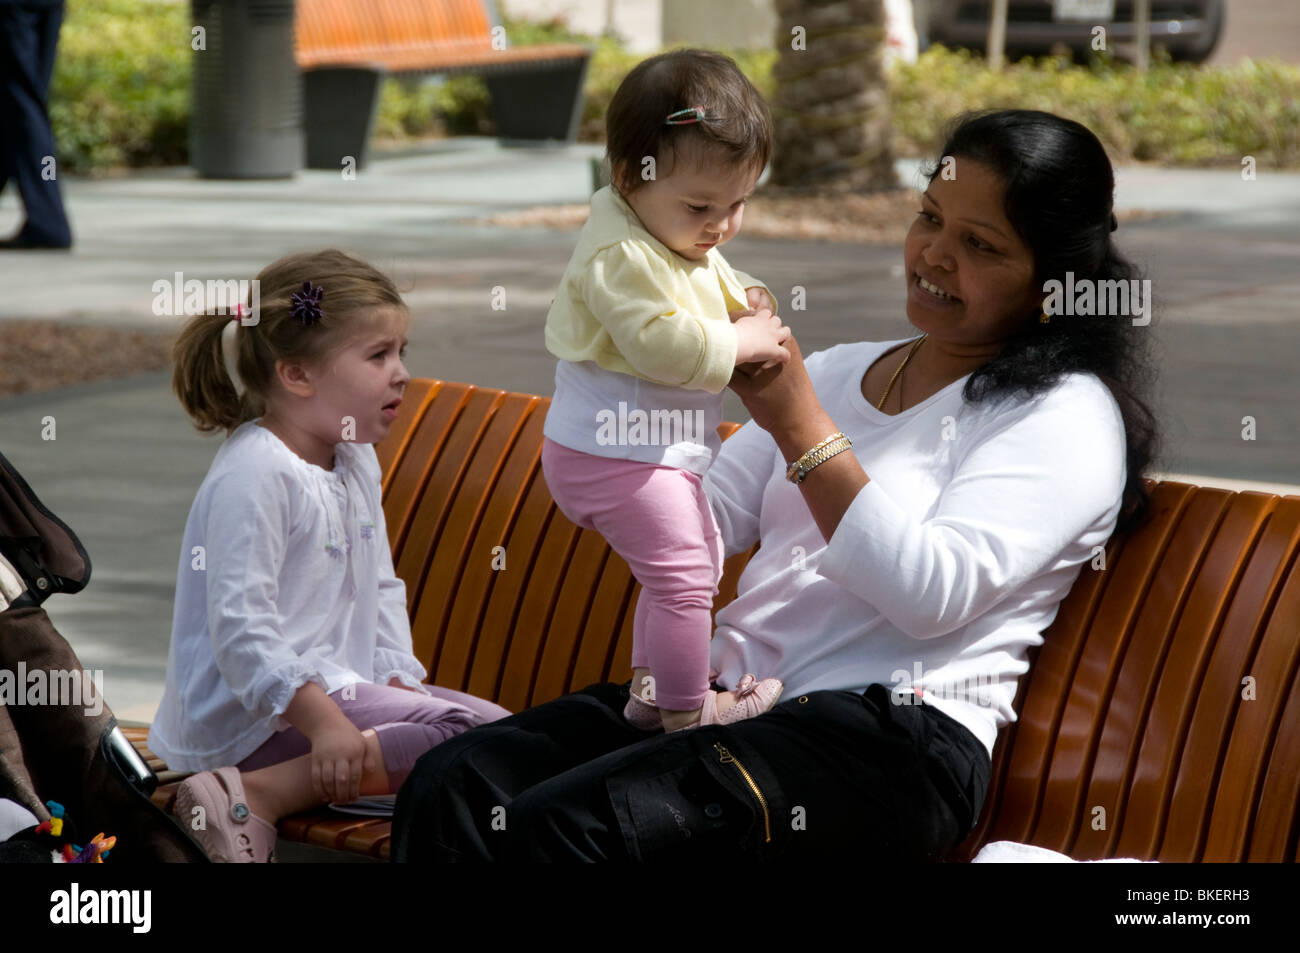 A nanny playing with children - Stock Image